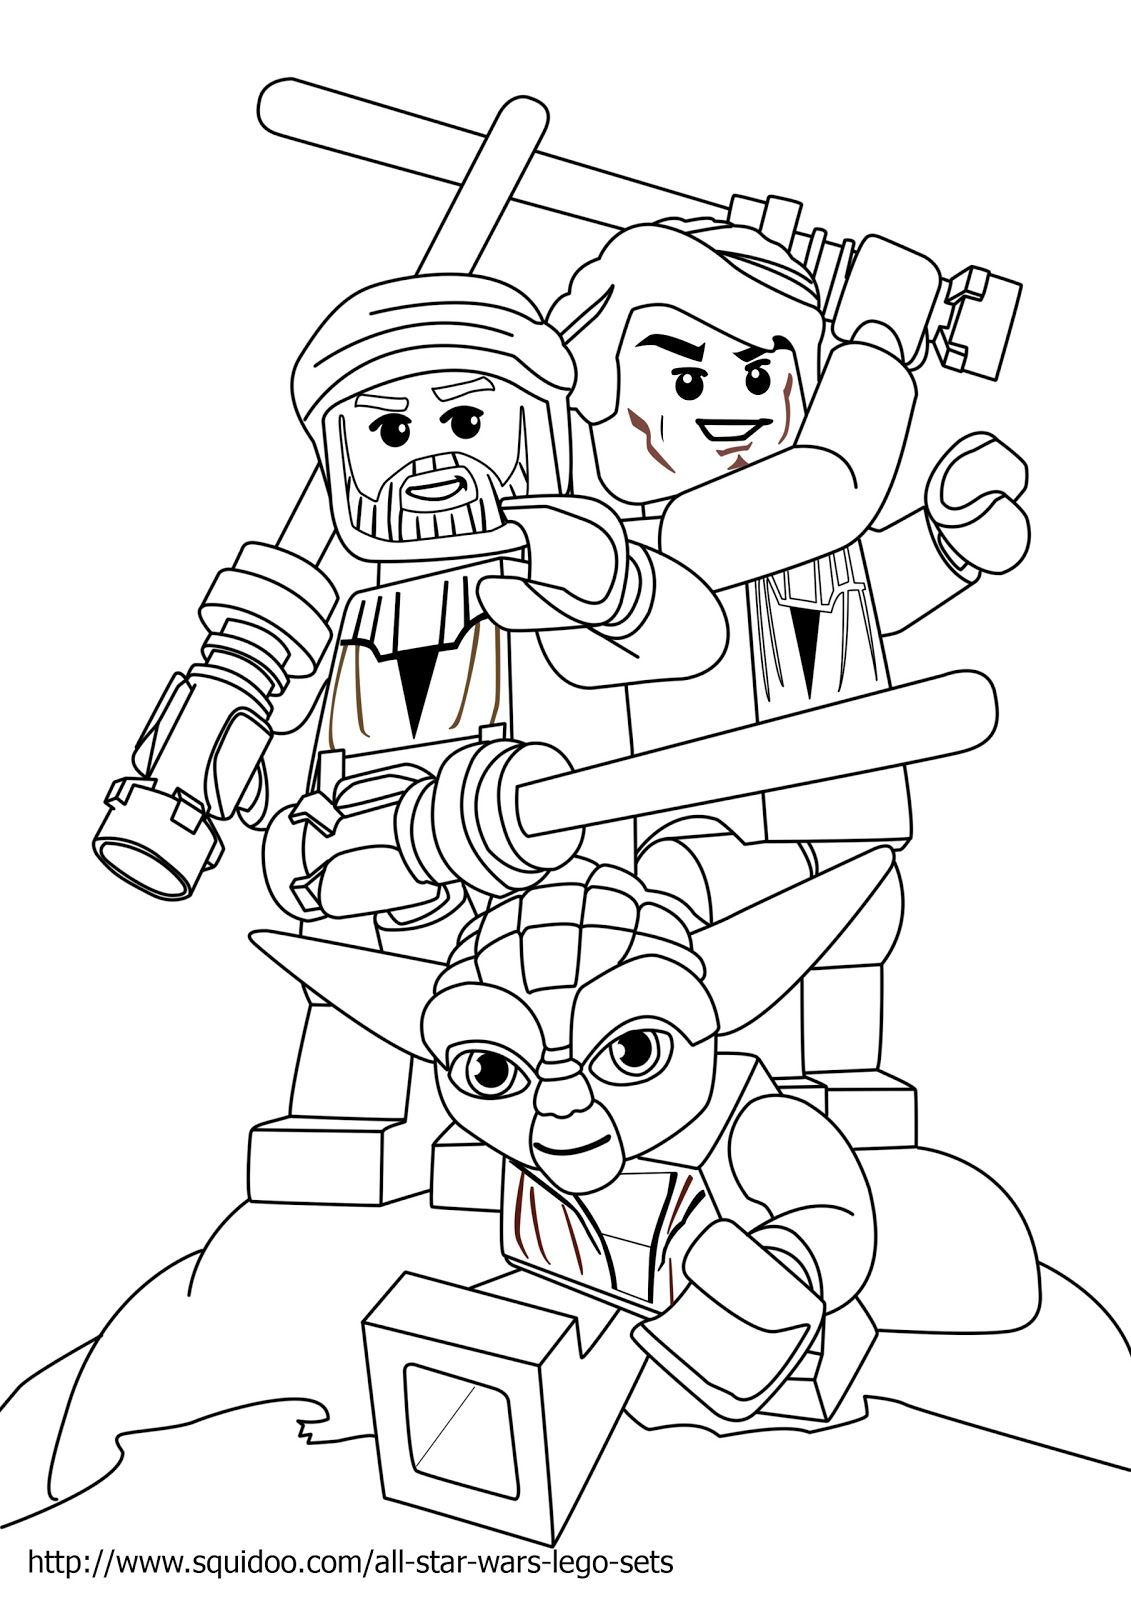 lego star wars coloring pages printable lego star wars coloring pages k5 worksheets wars pages star printable coloring lego